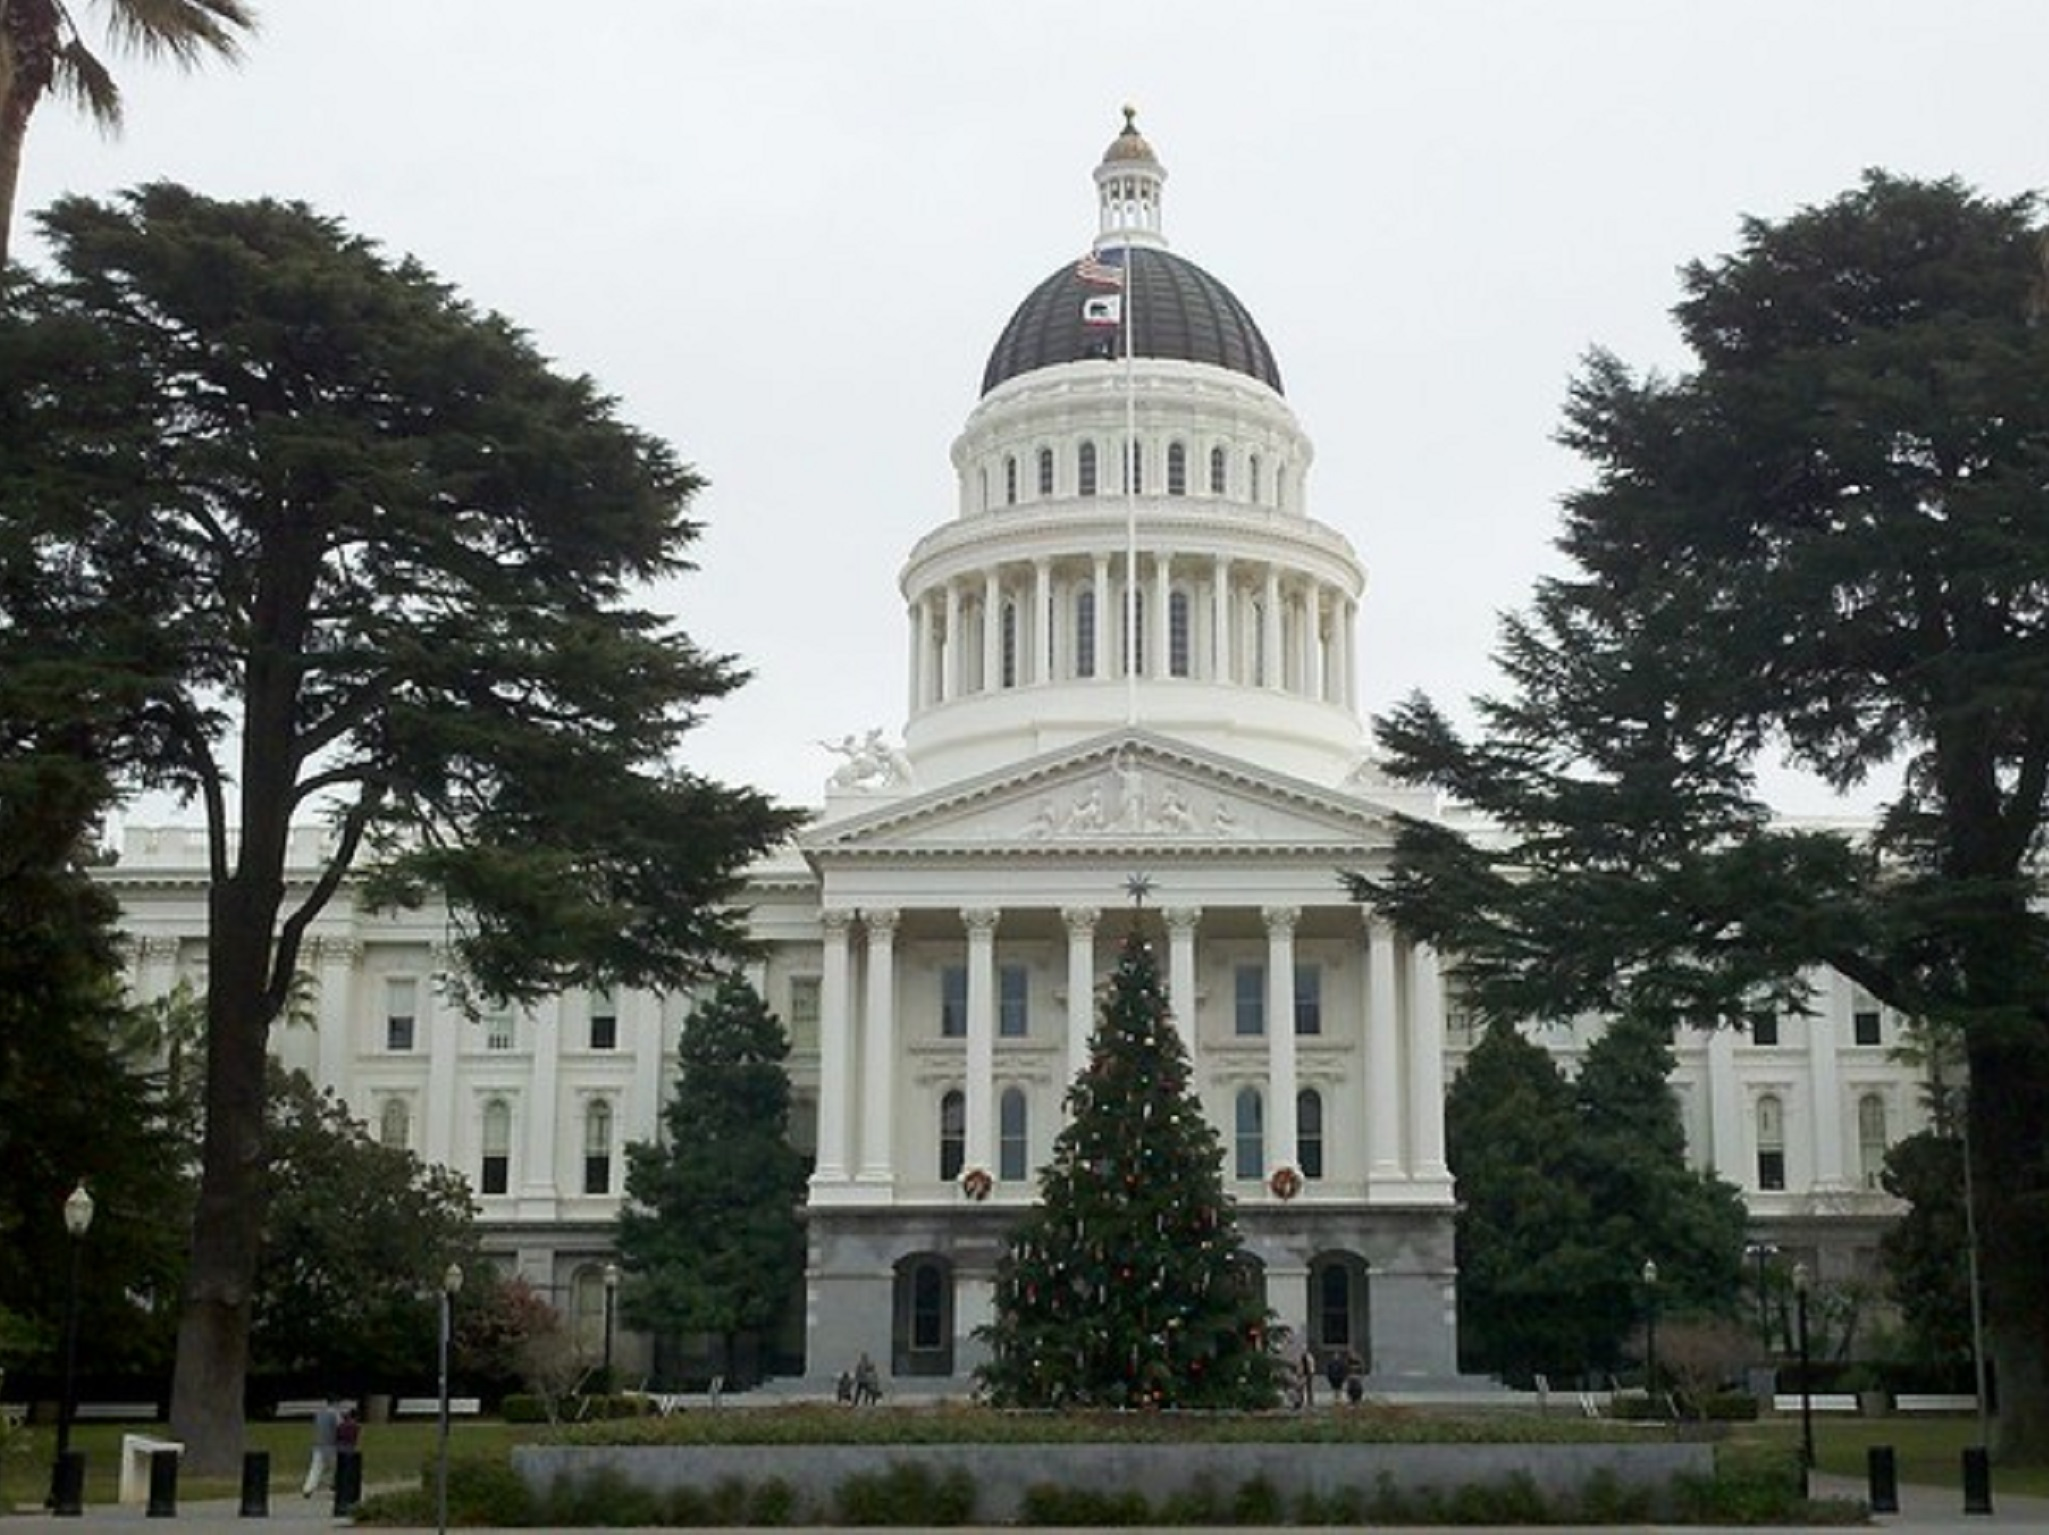 The front of the California State Capitol building